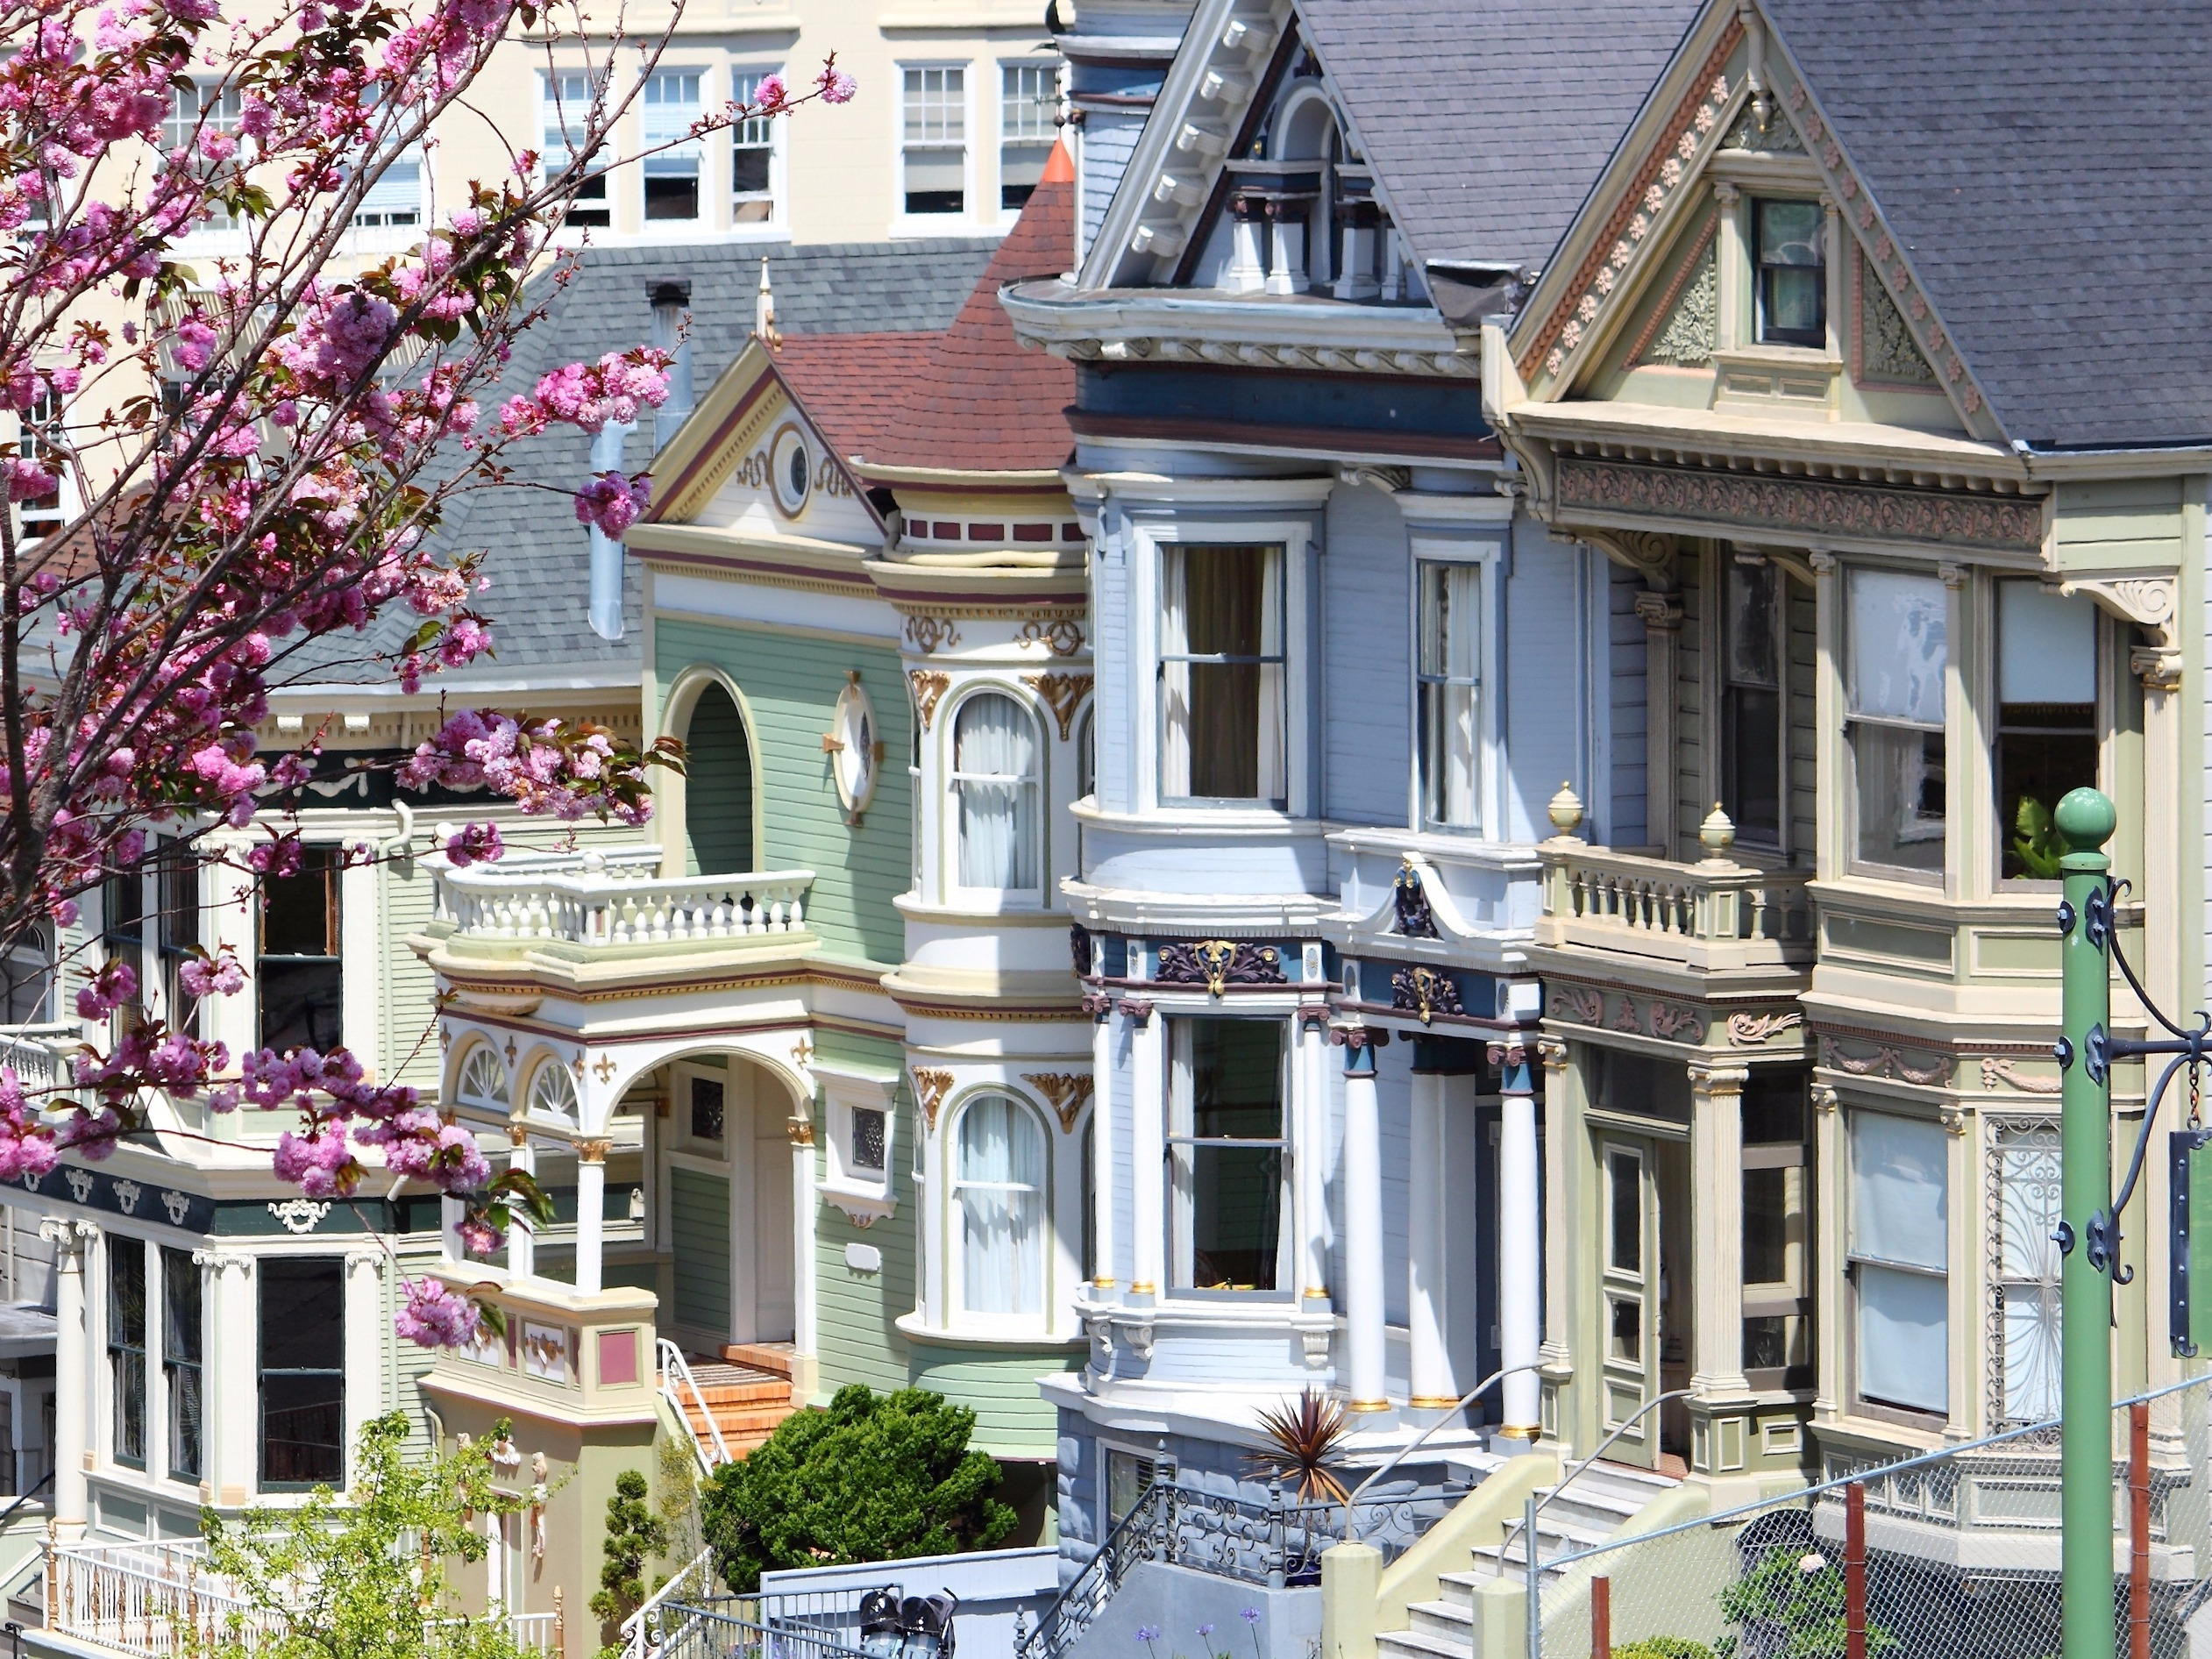 San Francisco Housing Costs